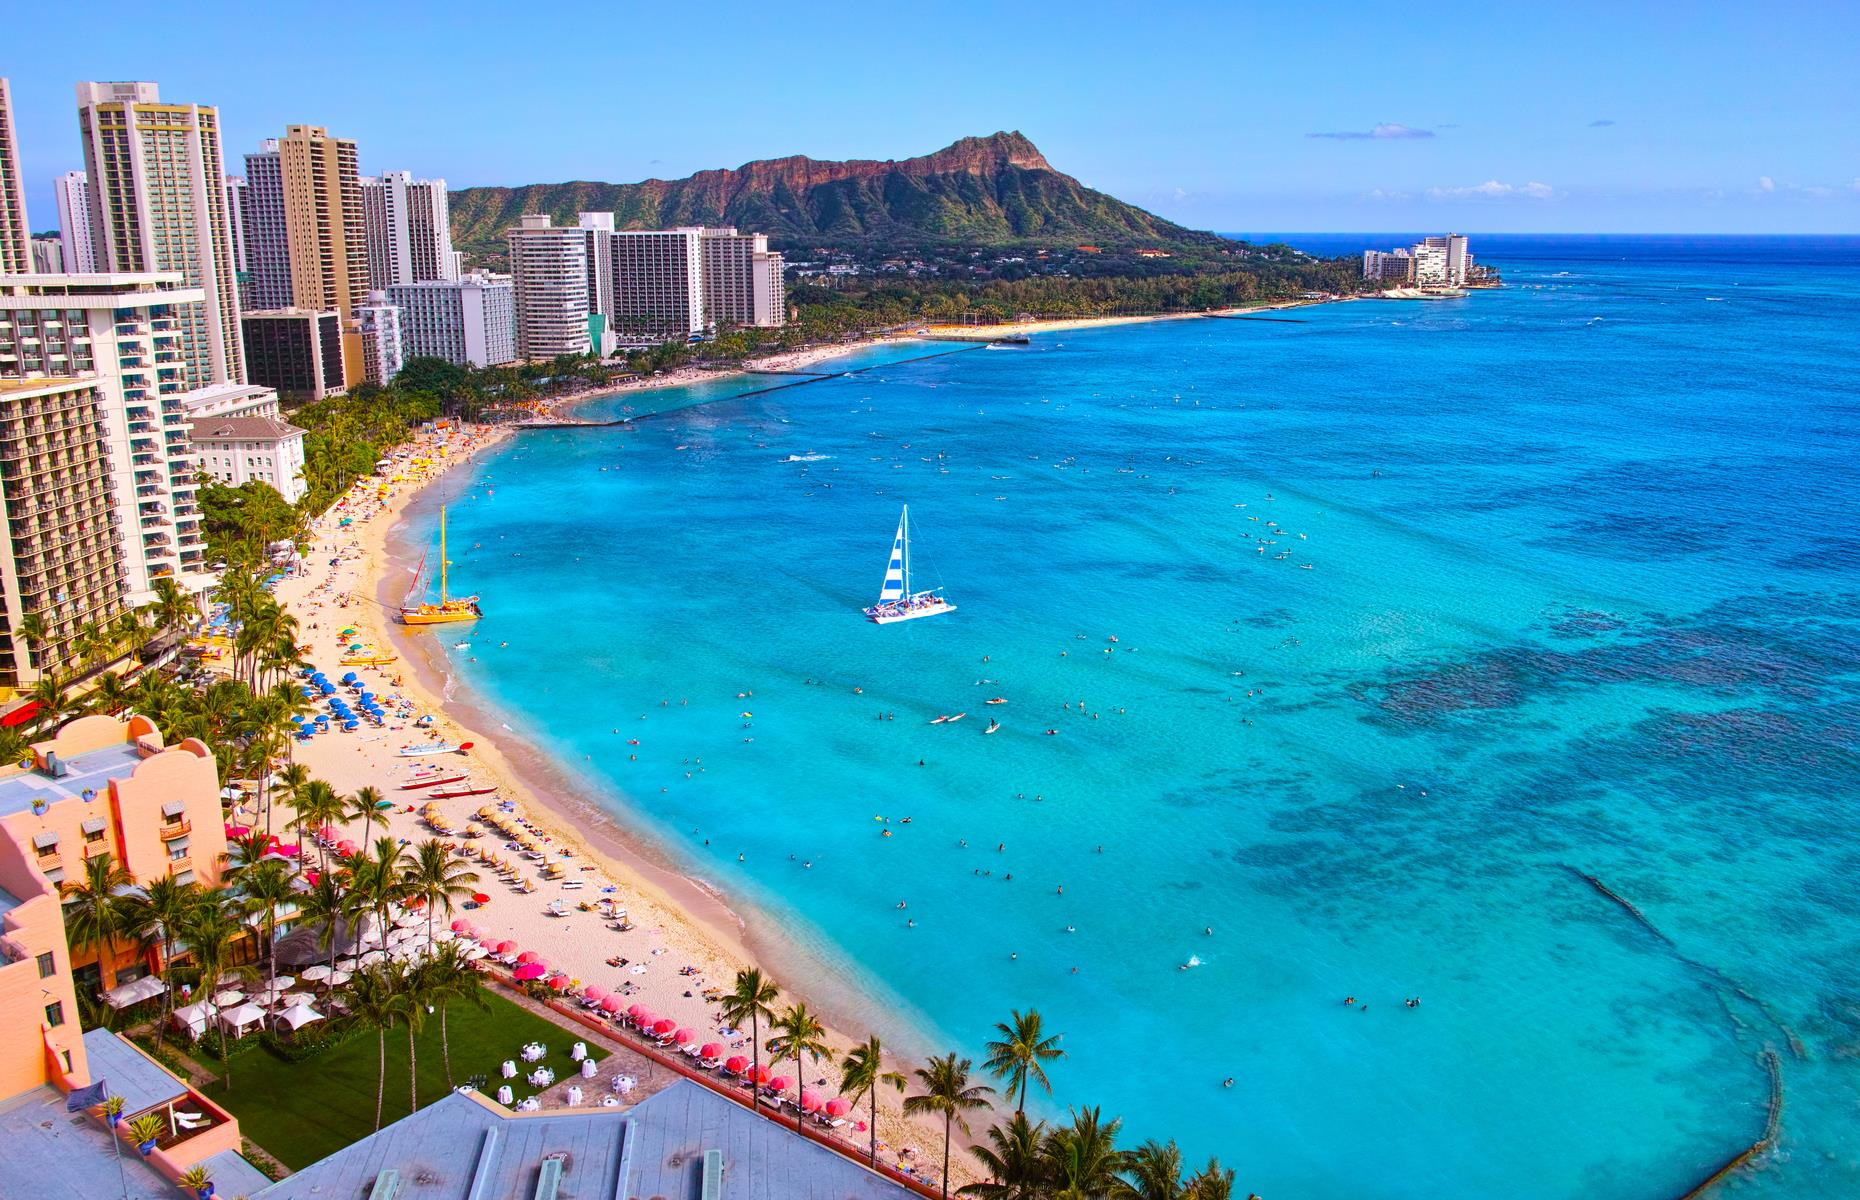 Slide 36 of 49: Waikiki in Oahu is Hawaii's most famous beach resort, a busy, sandy playground with legendary surf. Yet the island has plenty of sandy strands, and those who venture to shores further afield will be rewarded with extra space, peace and quiet.